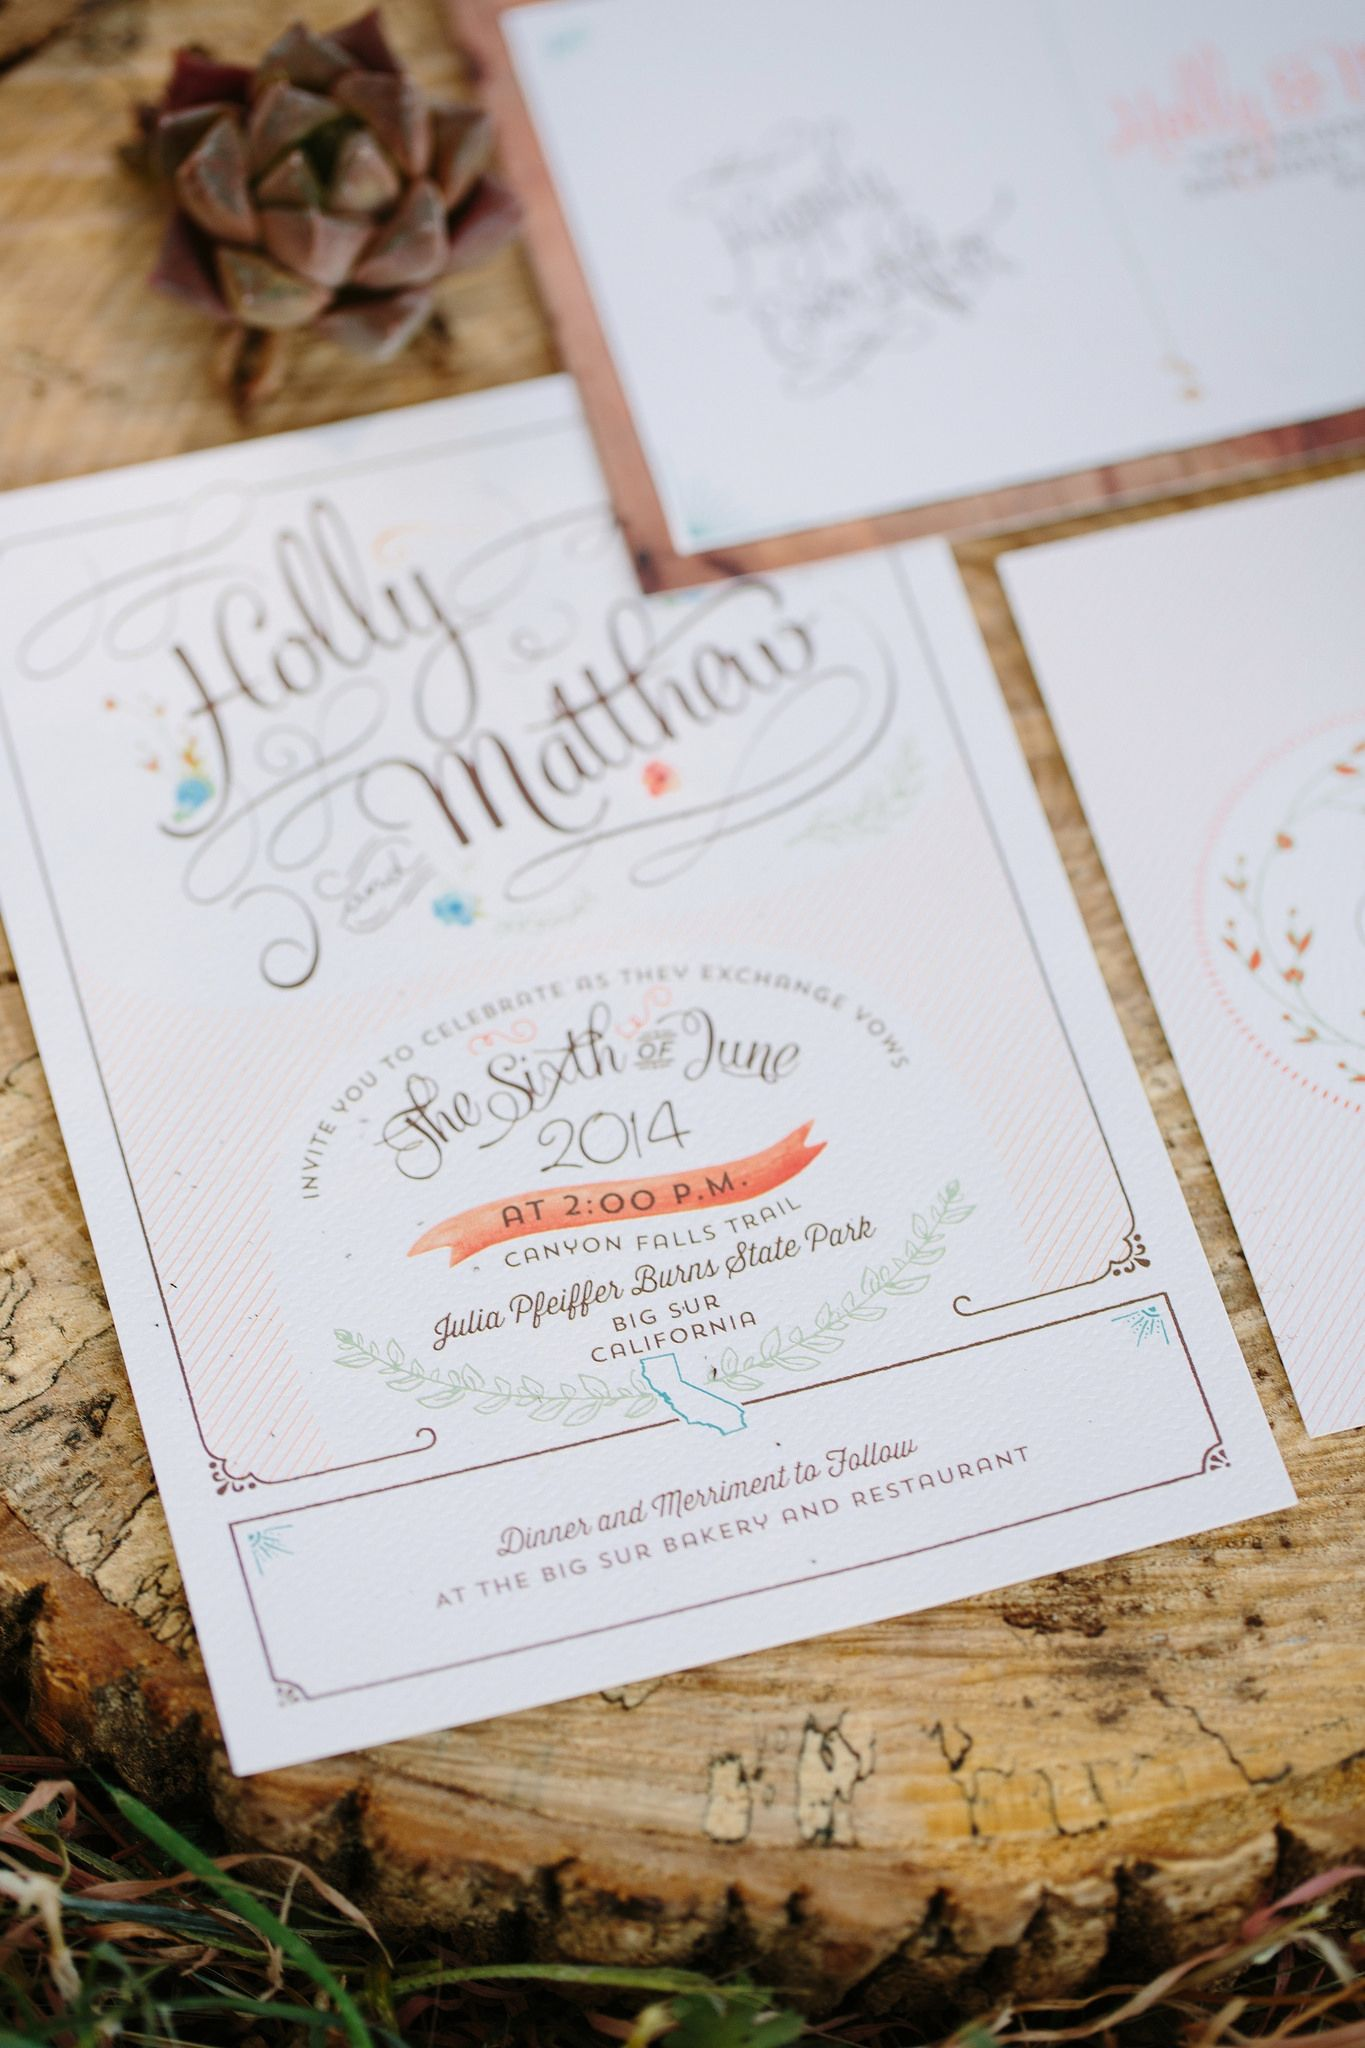 How Soon To Send Out Wedding Invitations Templates Designs More Http Addressing Wedding Invitations Wedding Invitations Rsvp Unique Wedding Invitation Wording